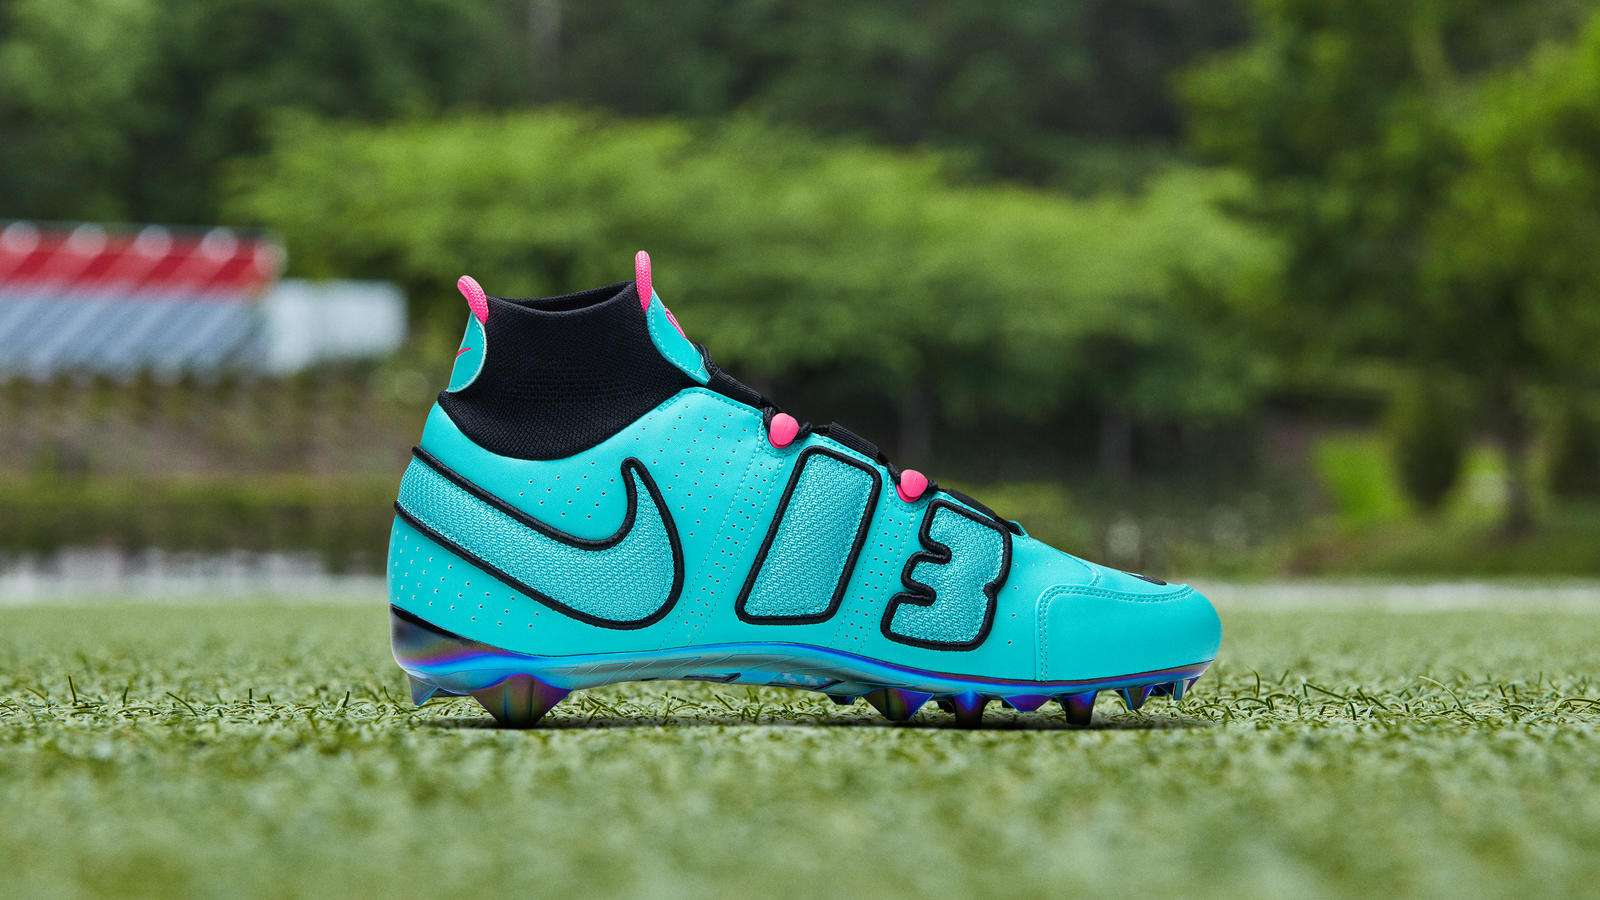 OBJ Odell Beckham Jr. Week 12 Nike Vapor Untouchable Pro 3 Uptempo Cleat LeBron 8 South Beach 3